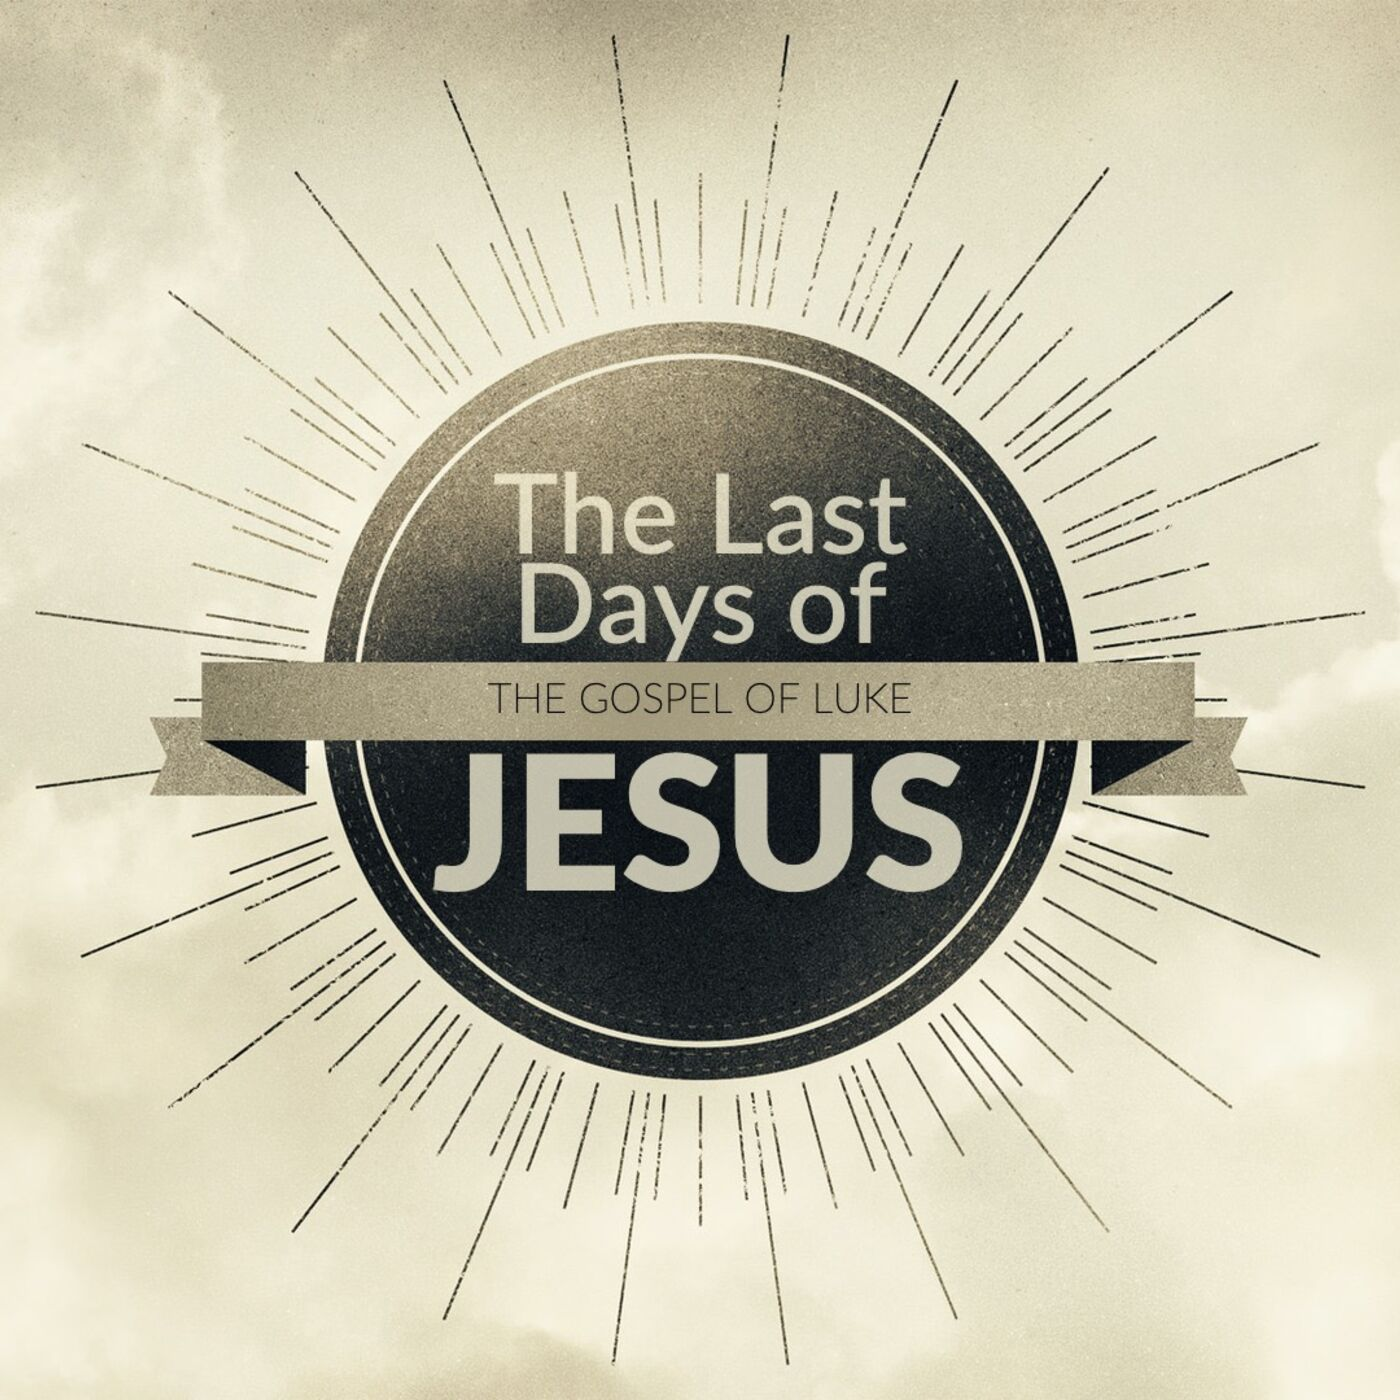 The Last Days of Jesus: How to Come Before God (Luke 18:1-14)